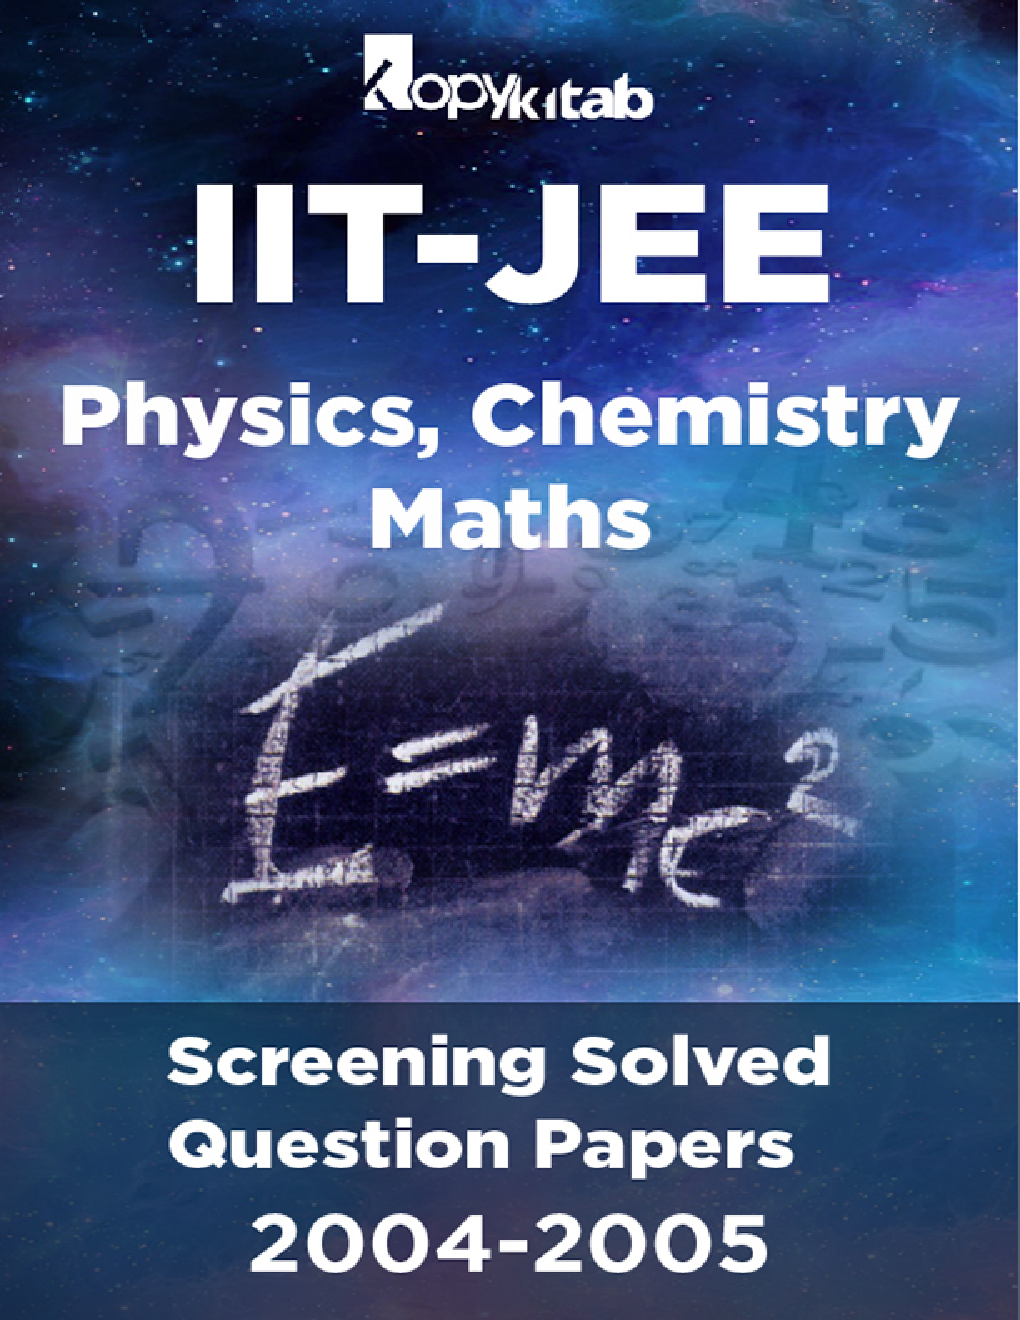 IIT-JEE Screening Solved Question Papers (Physics,Chemistry,Maths) 2004-2005 - Page 1